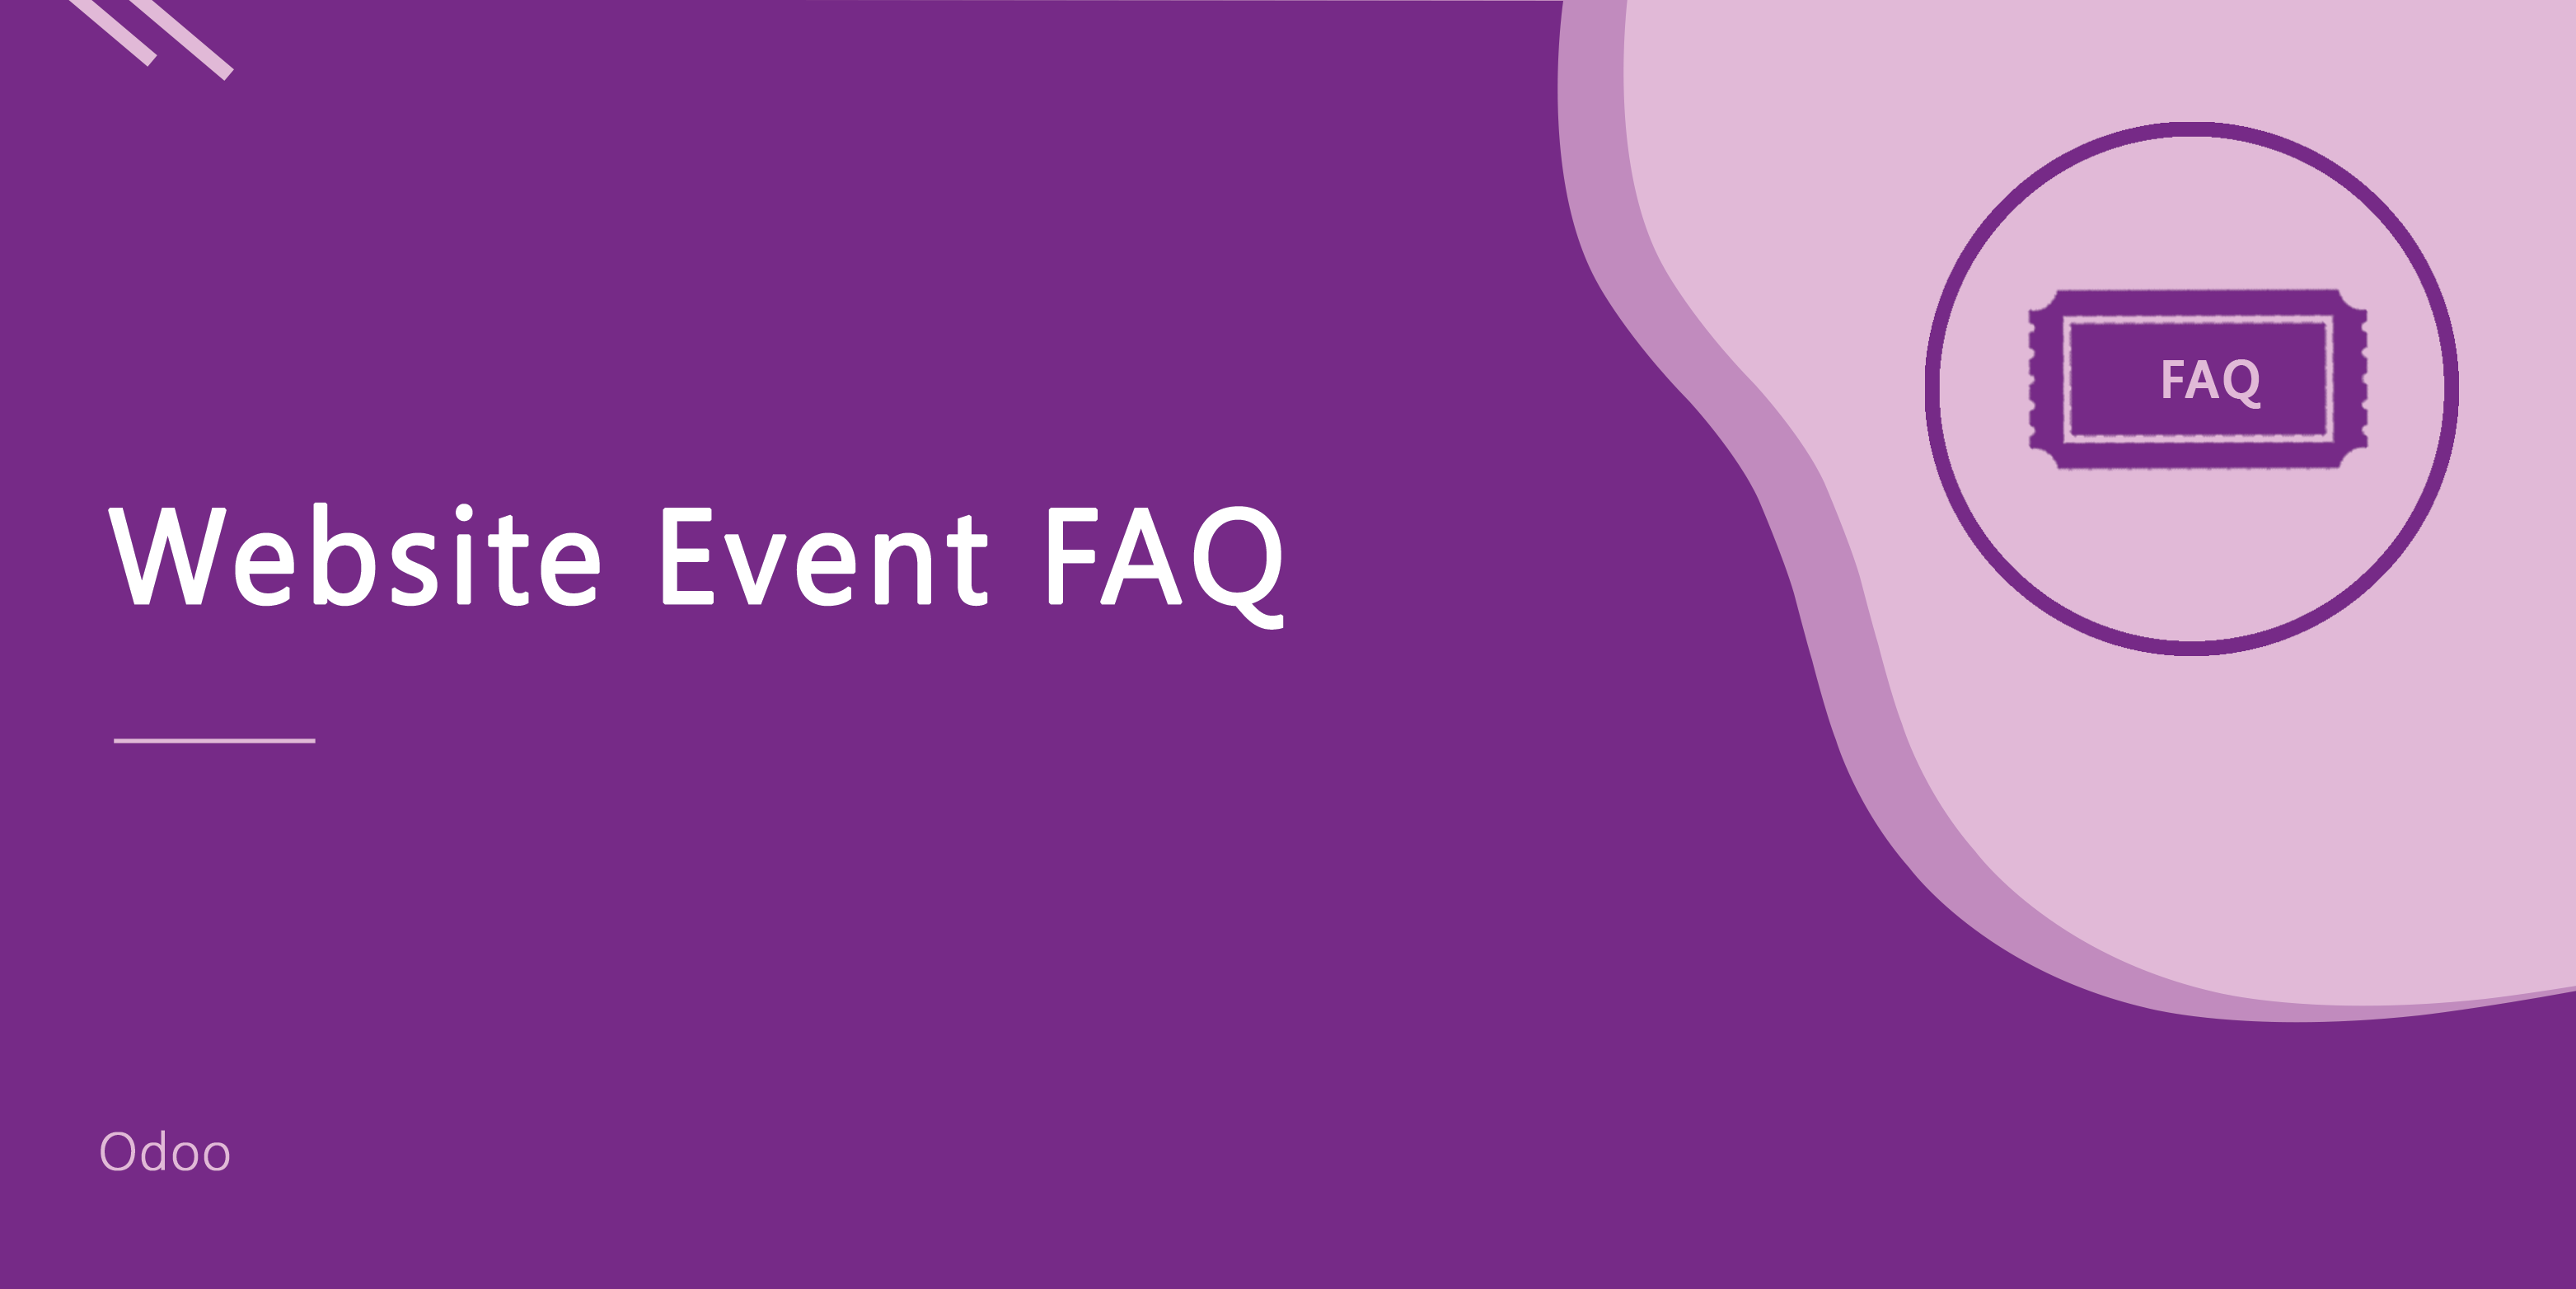 Website Event FAQ